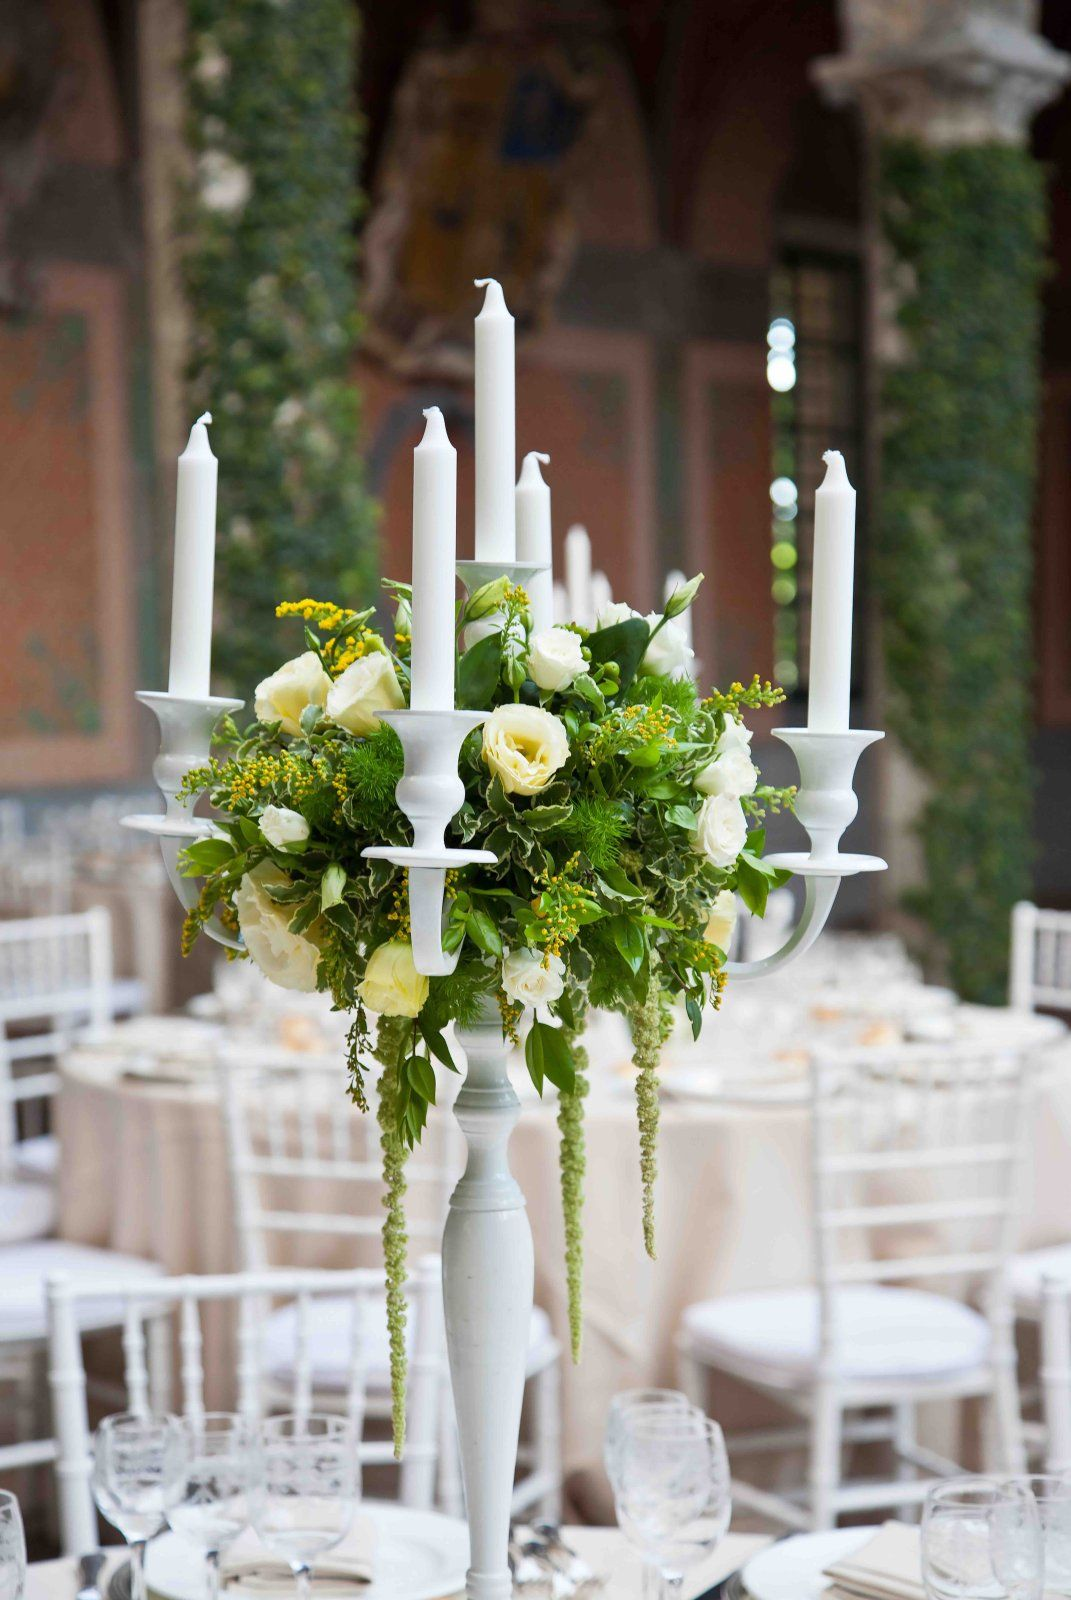 pinterest wedding table decorations candles%0A Kandelaar Bloemen Centerpiece    CenterpiecesWedding